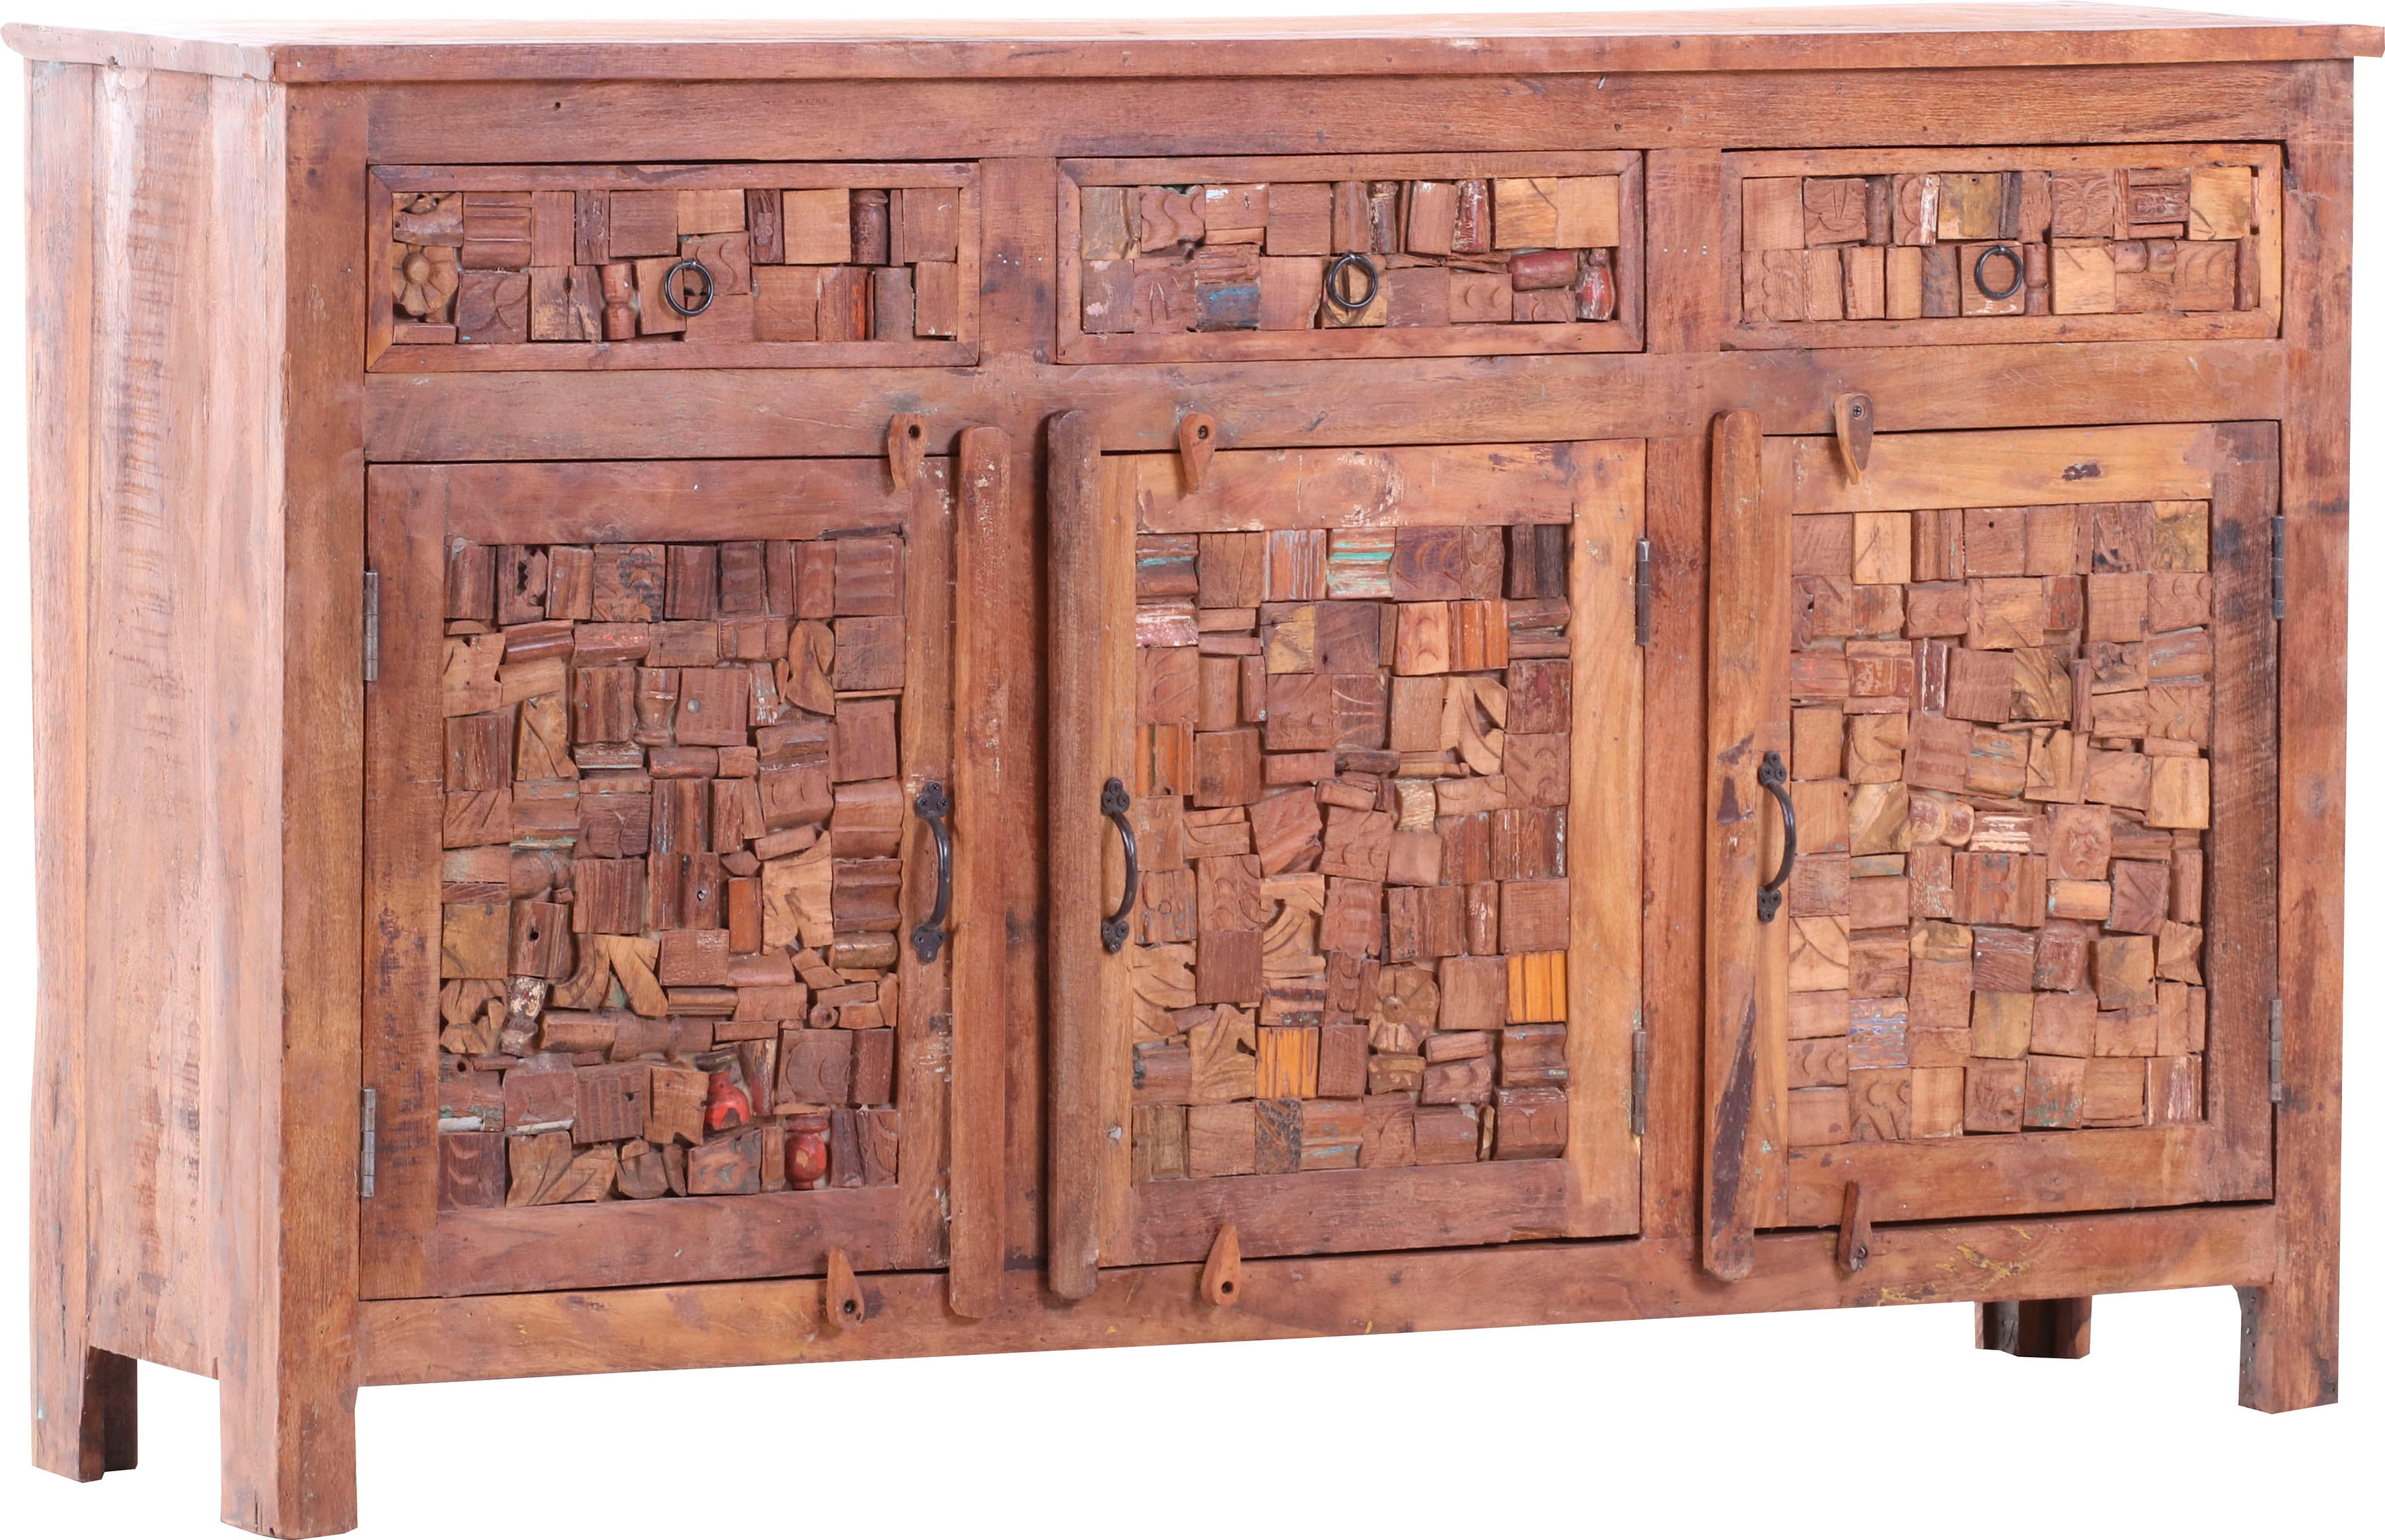 Gutmann Factory Sideboard Puzzle